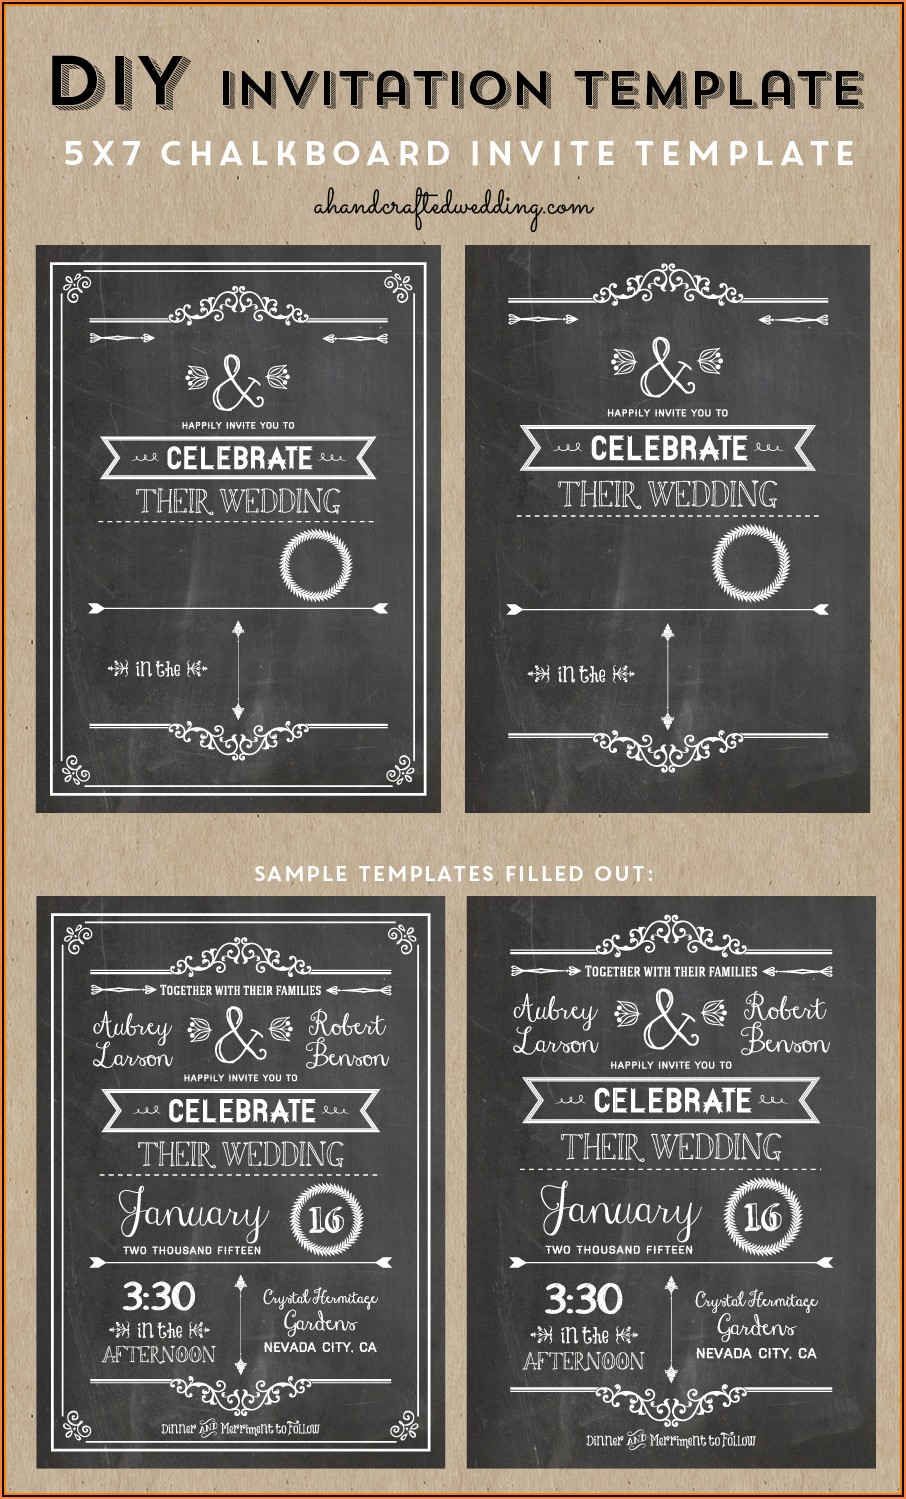 Free Editable Chalkboard Invitation Template